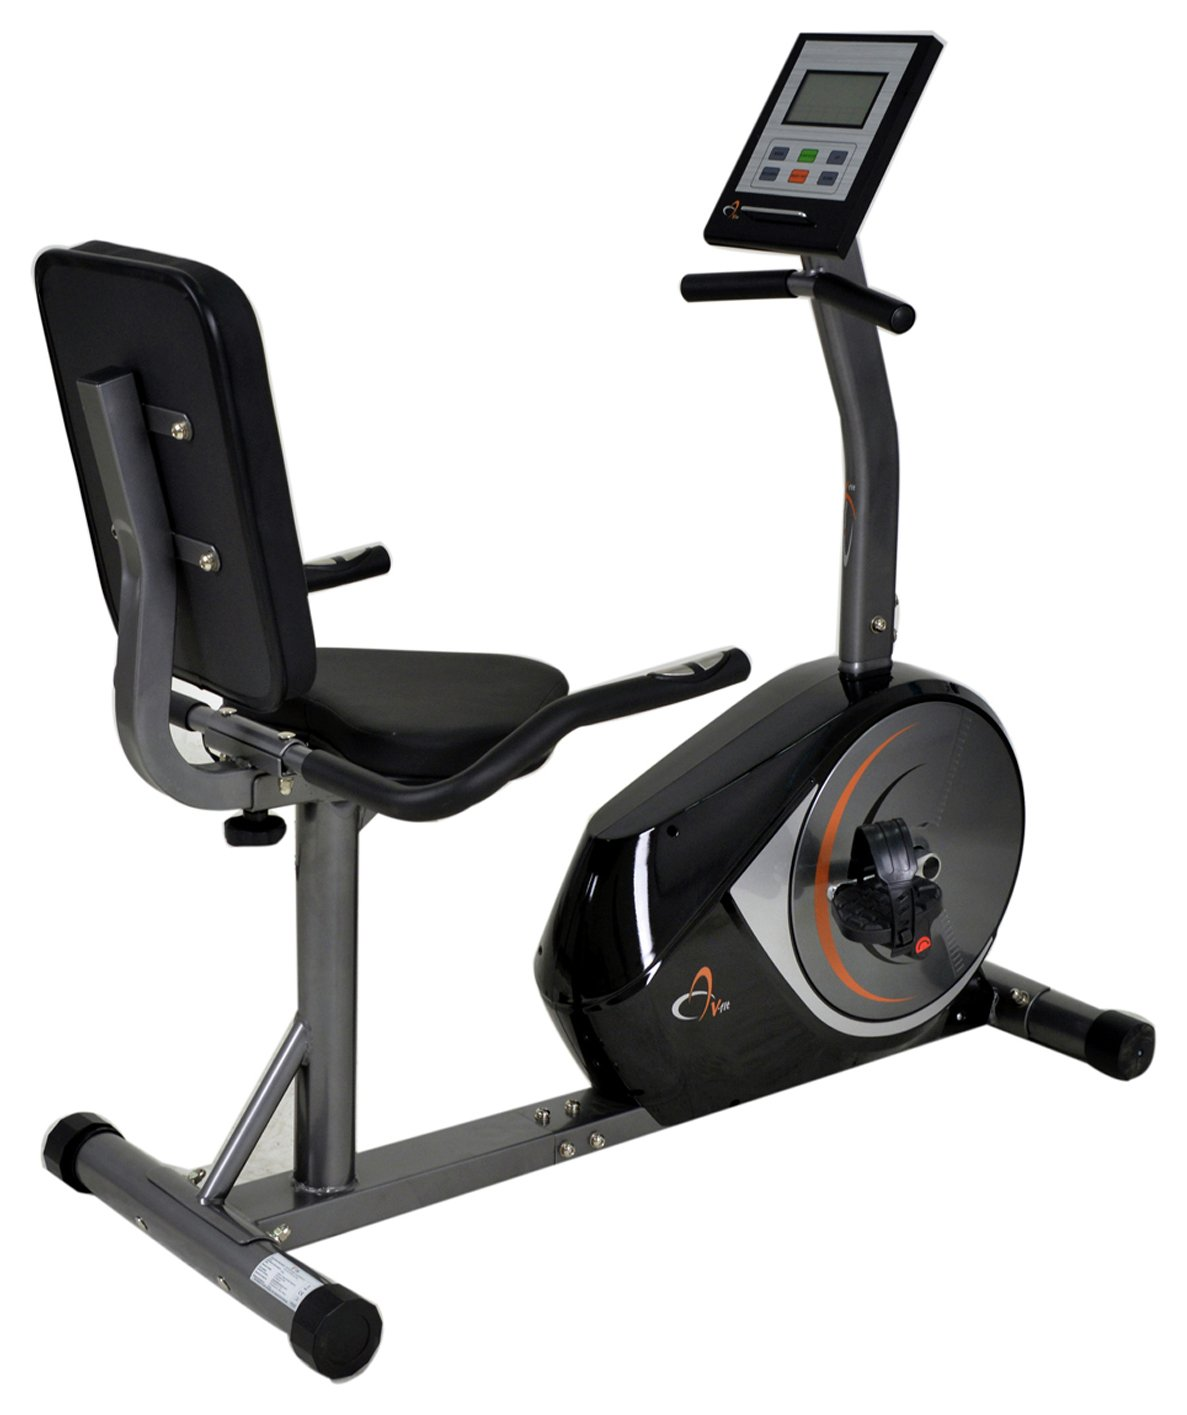 V-fit - CY096 Magnetic Recumbent Exercise Bike lowest price